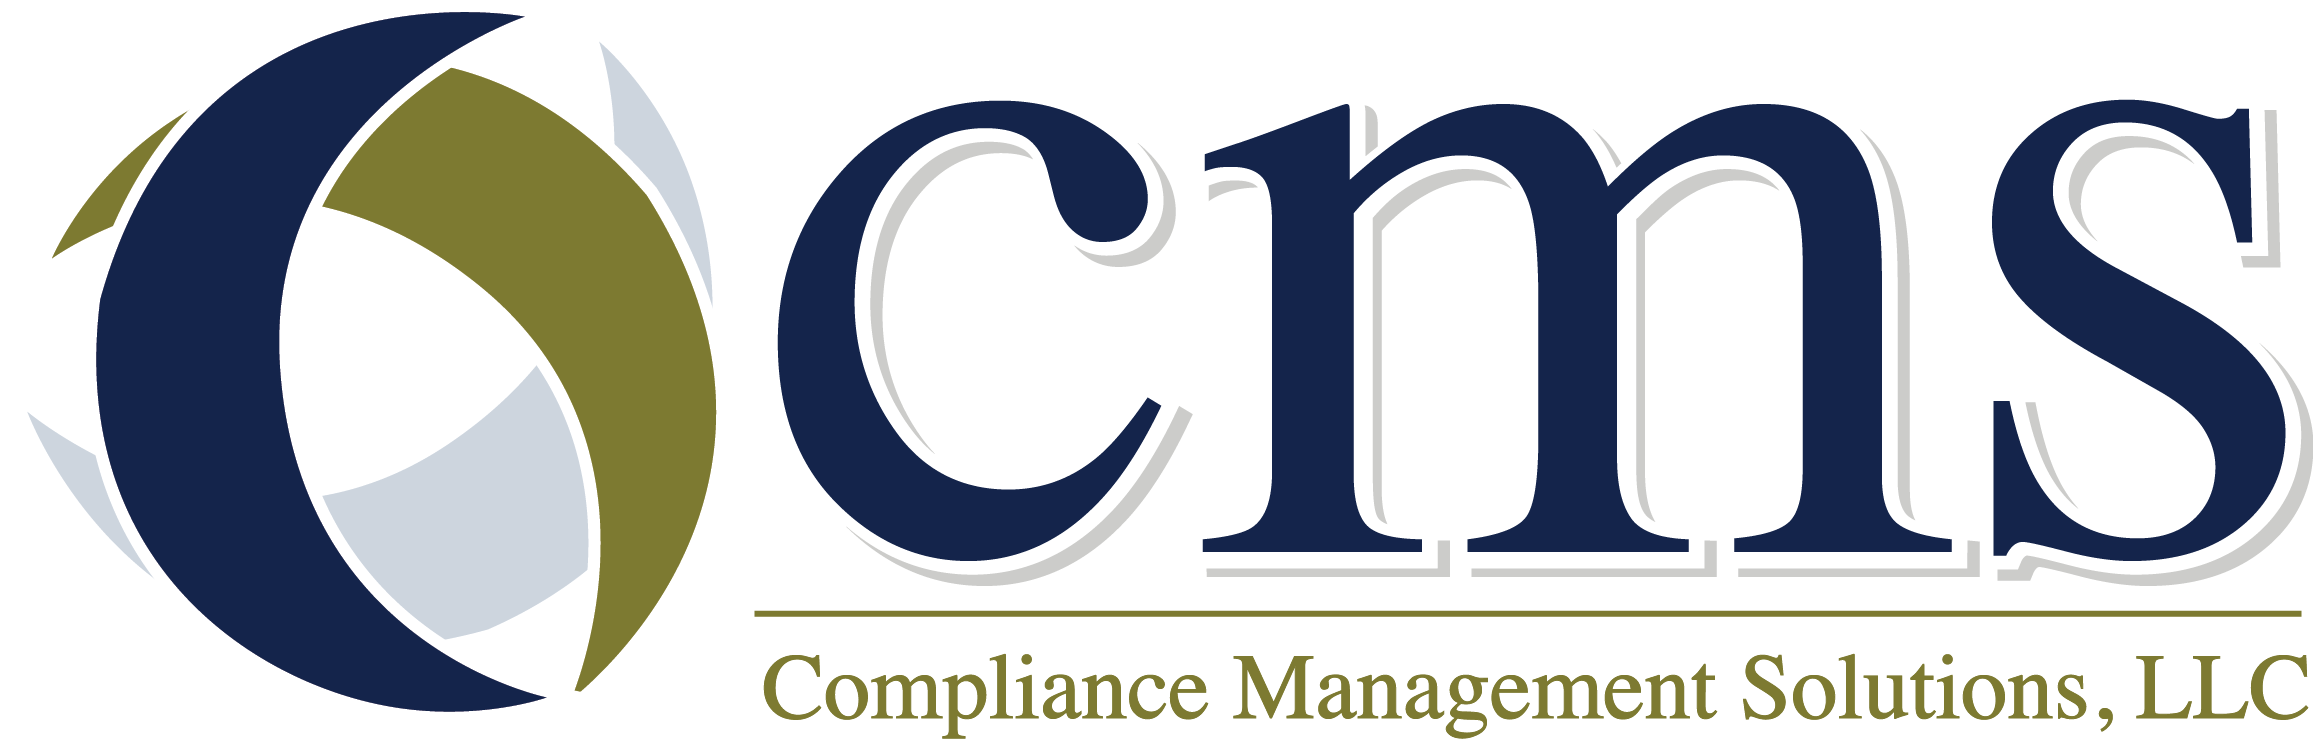 ComplianceManagementSolutions_logo